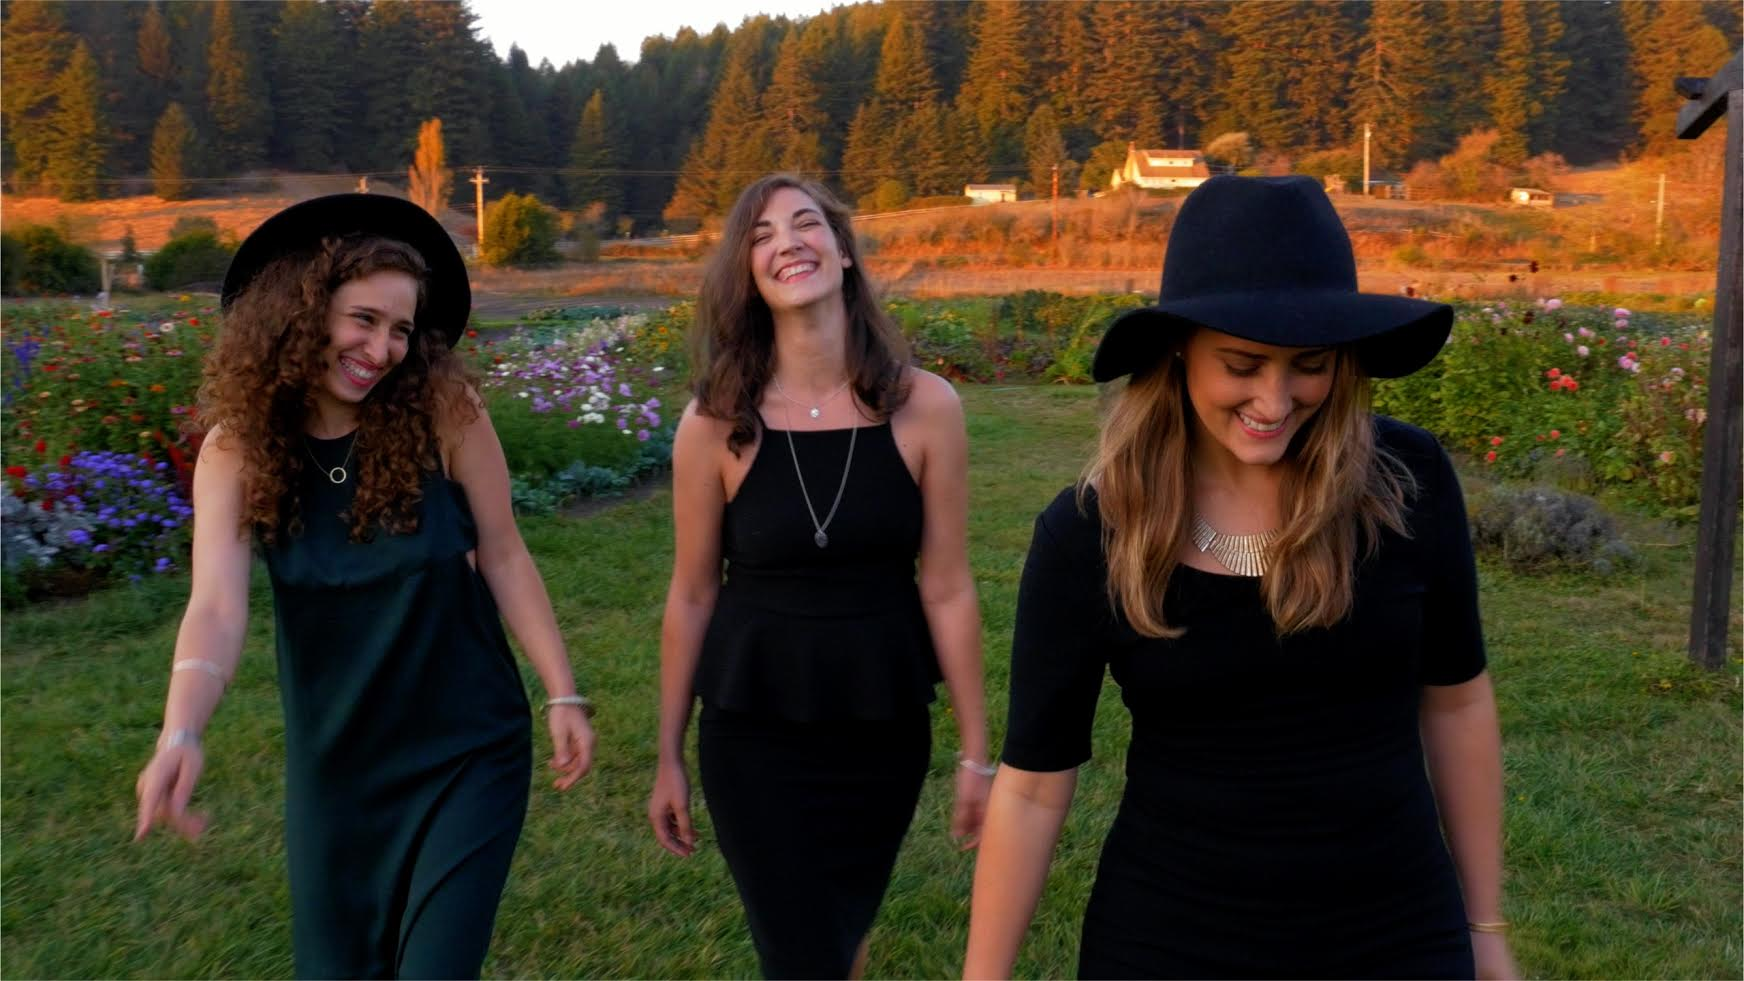 ... Live Sessions: Moorea Masa   Lost Coast Outpost   Humboldt County